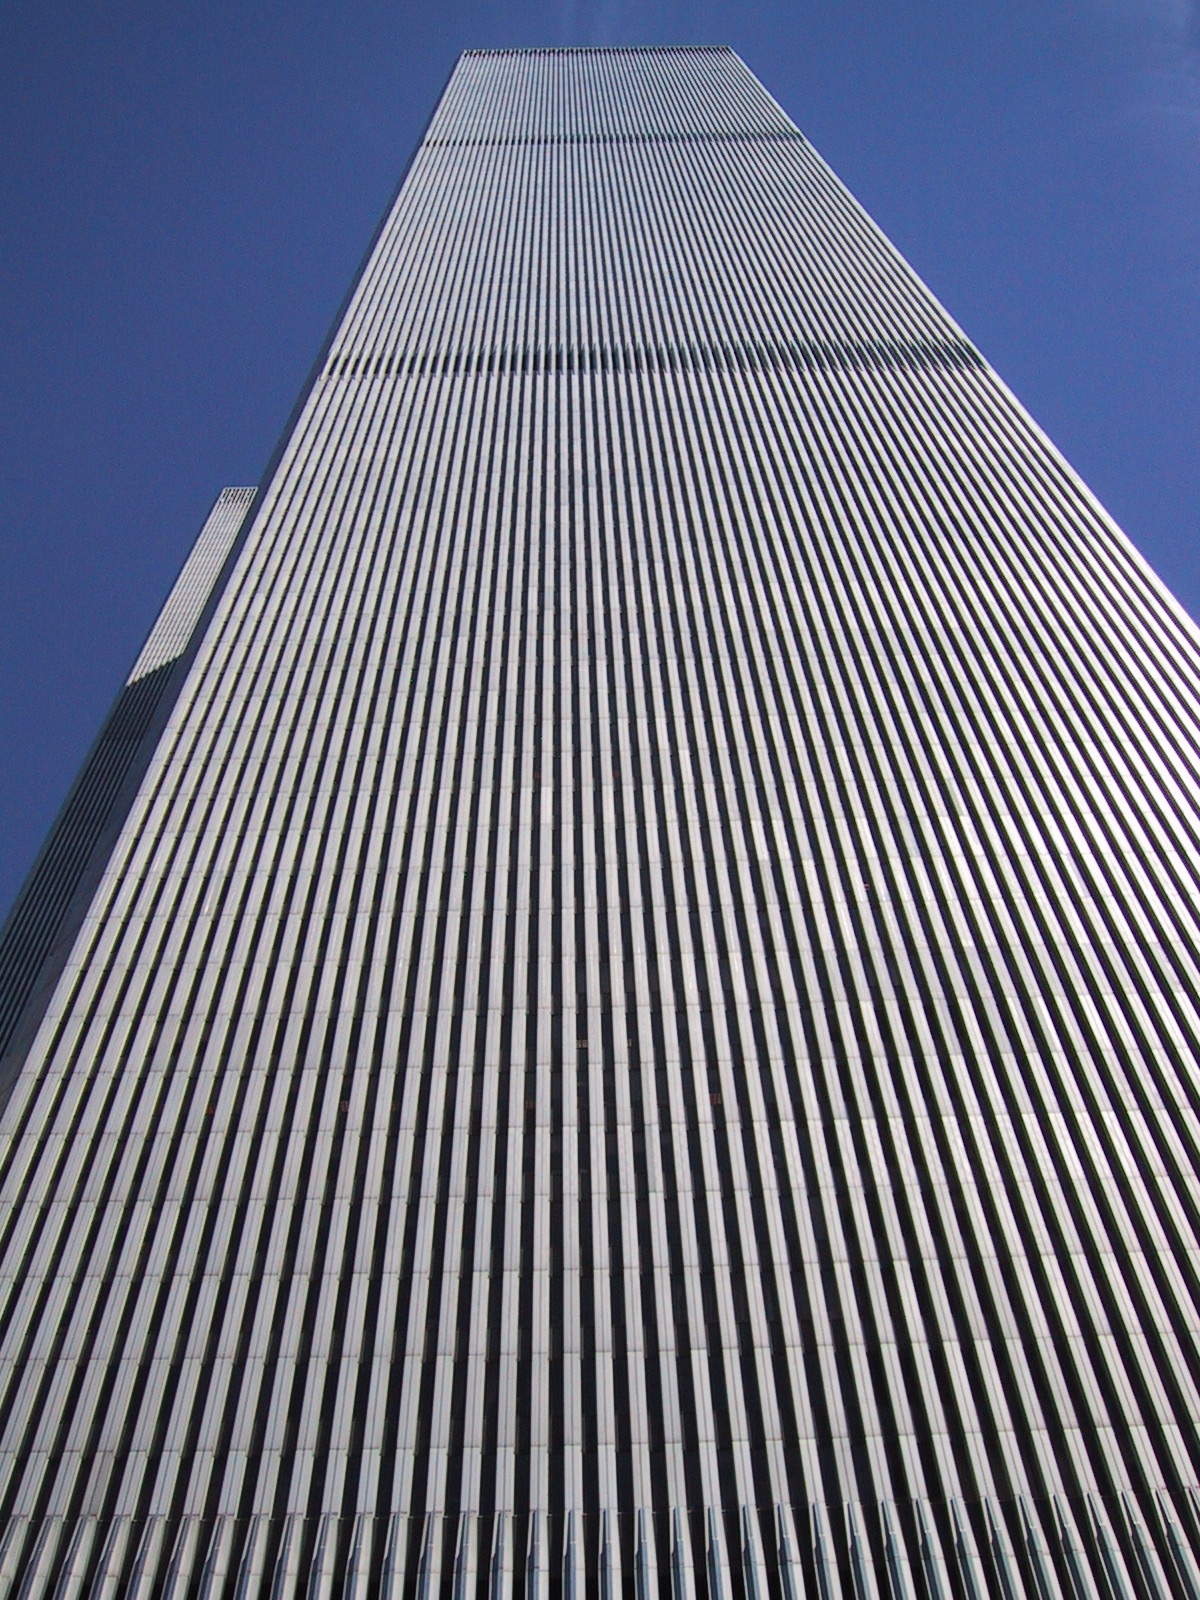 List Of Tenants In 2 World Trade Center Wikipedia